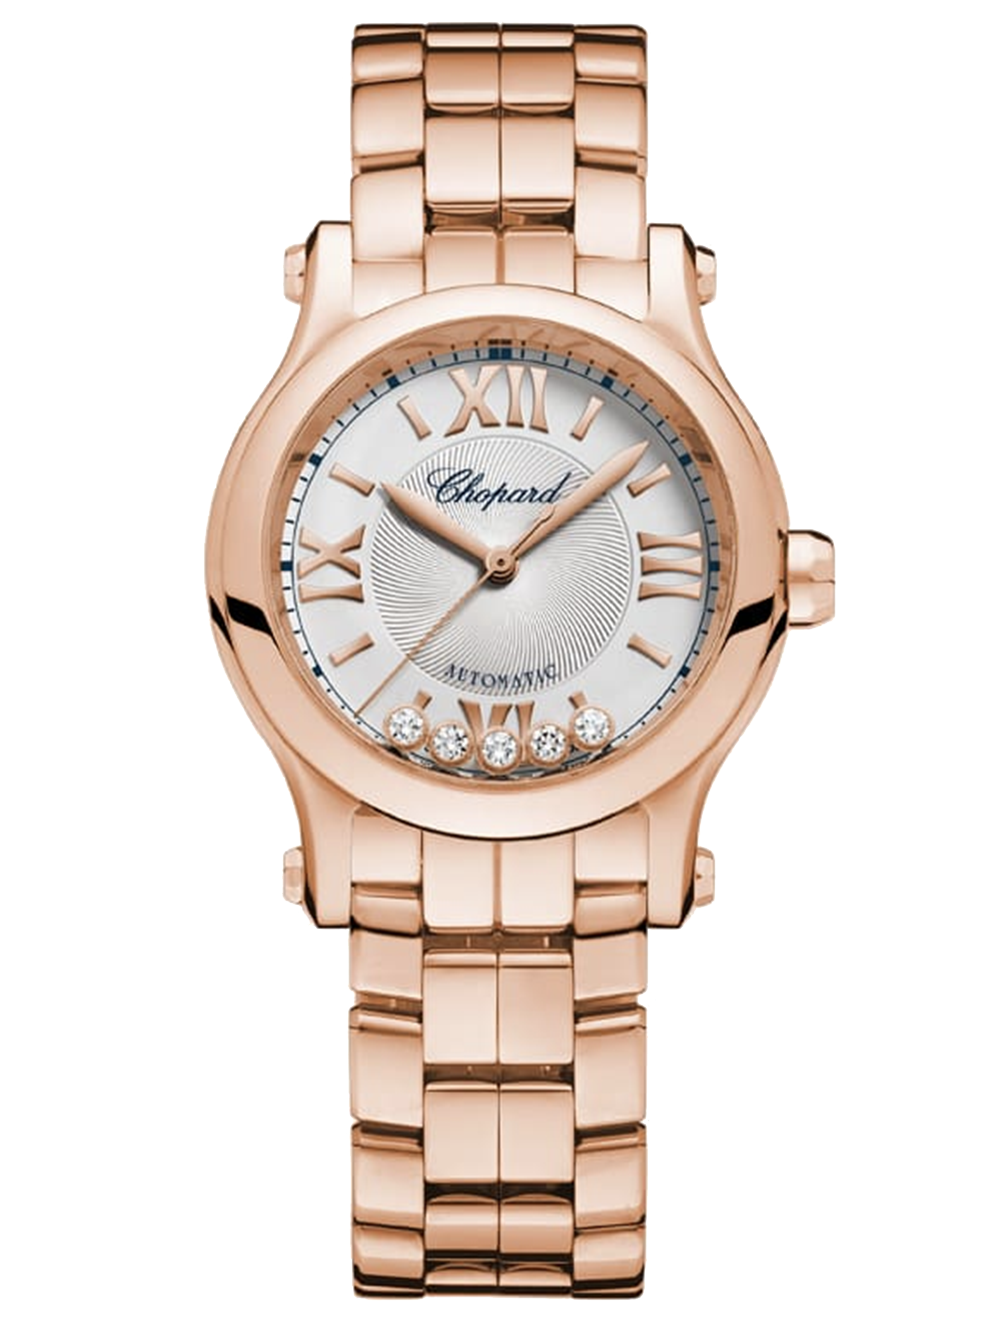 2f4487c44 CHOPARD HAPPY SPORT 30 MM AUTOMATIC 274893-5003 - New Watches ...